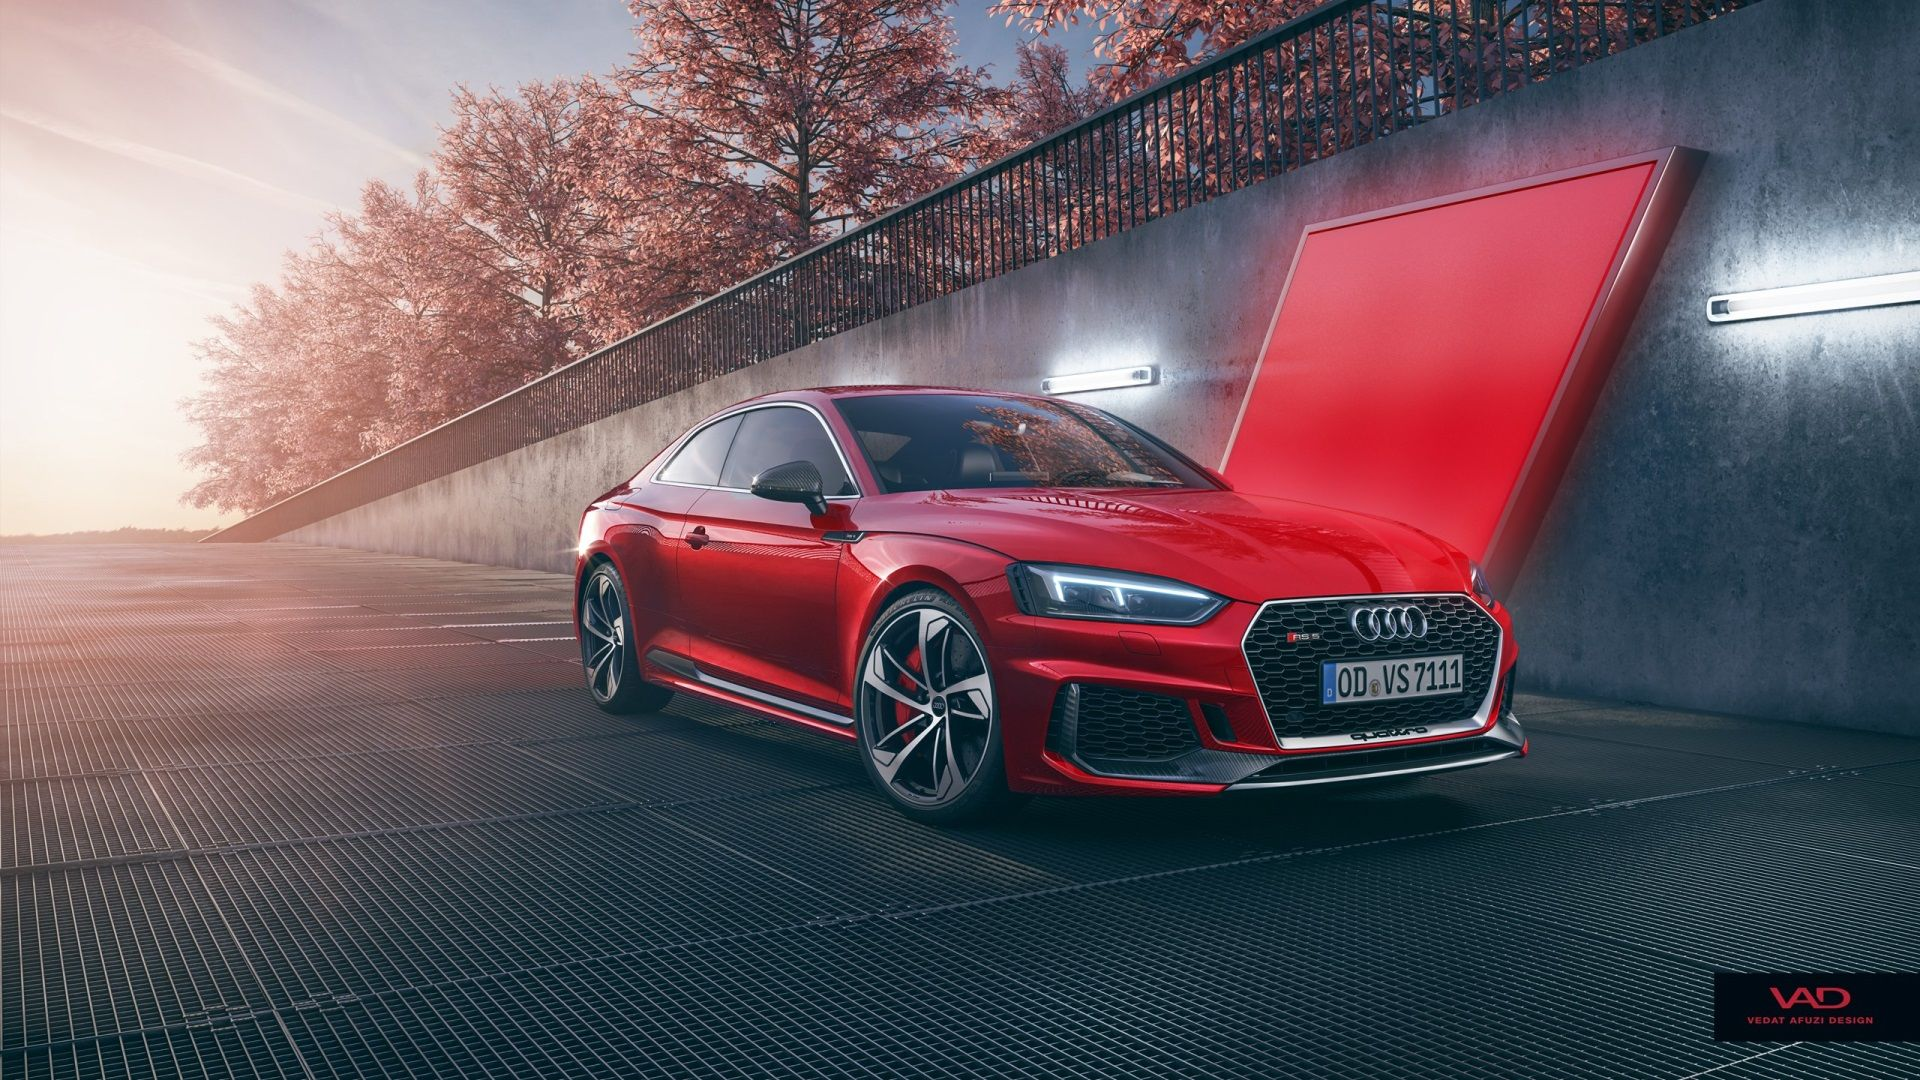 audi rs5 coupe beautiful background wallpaper